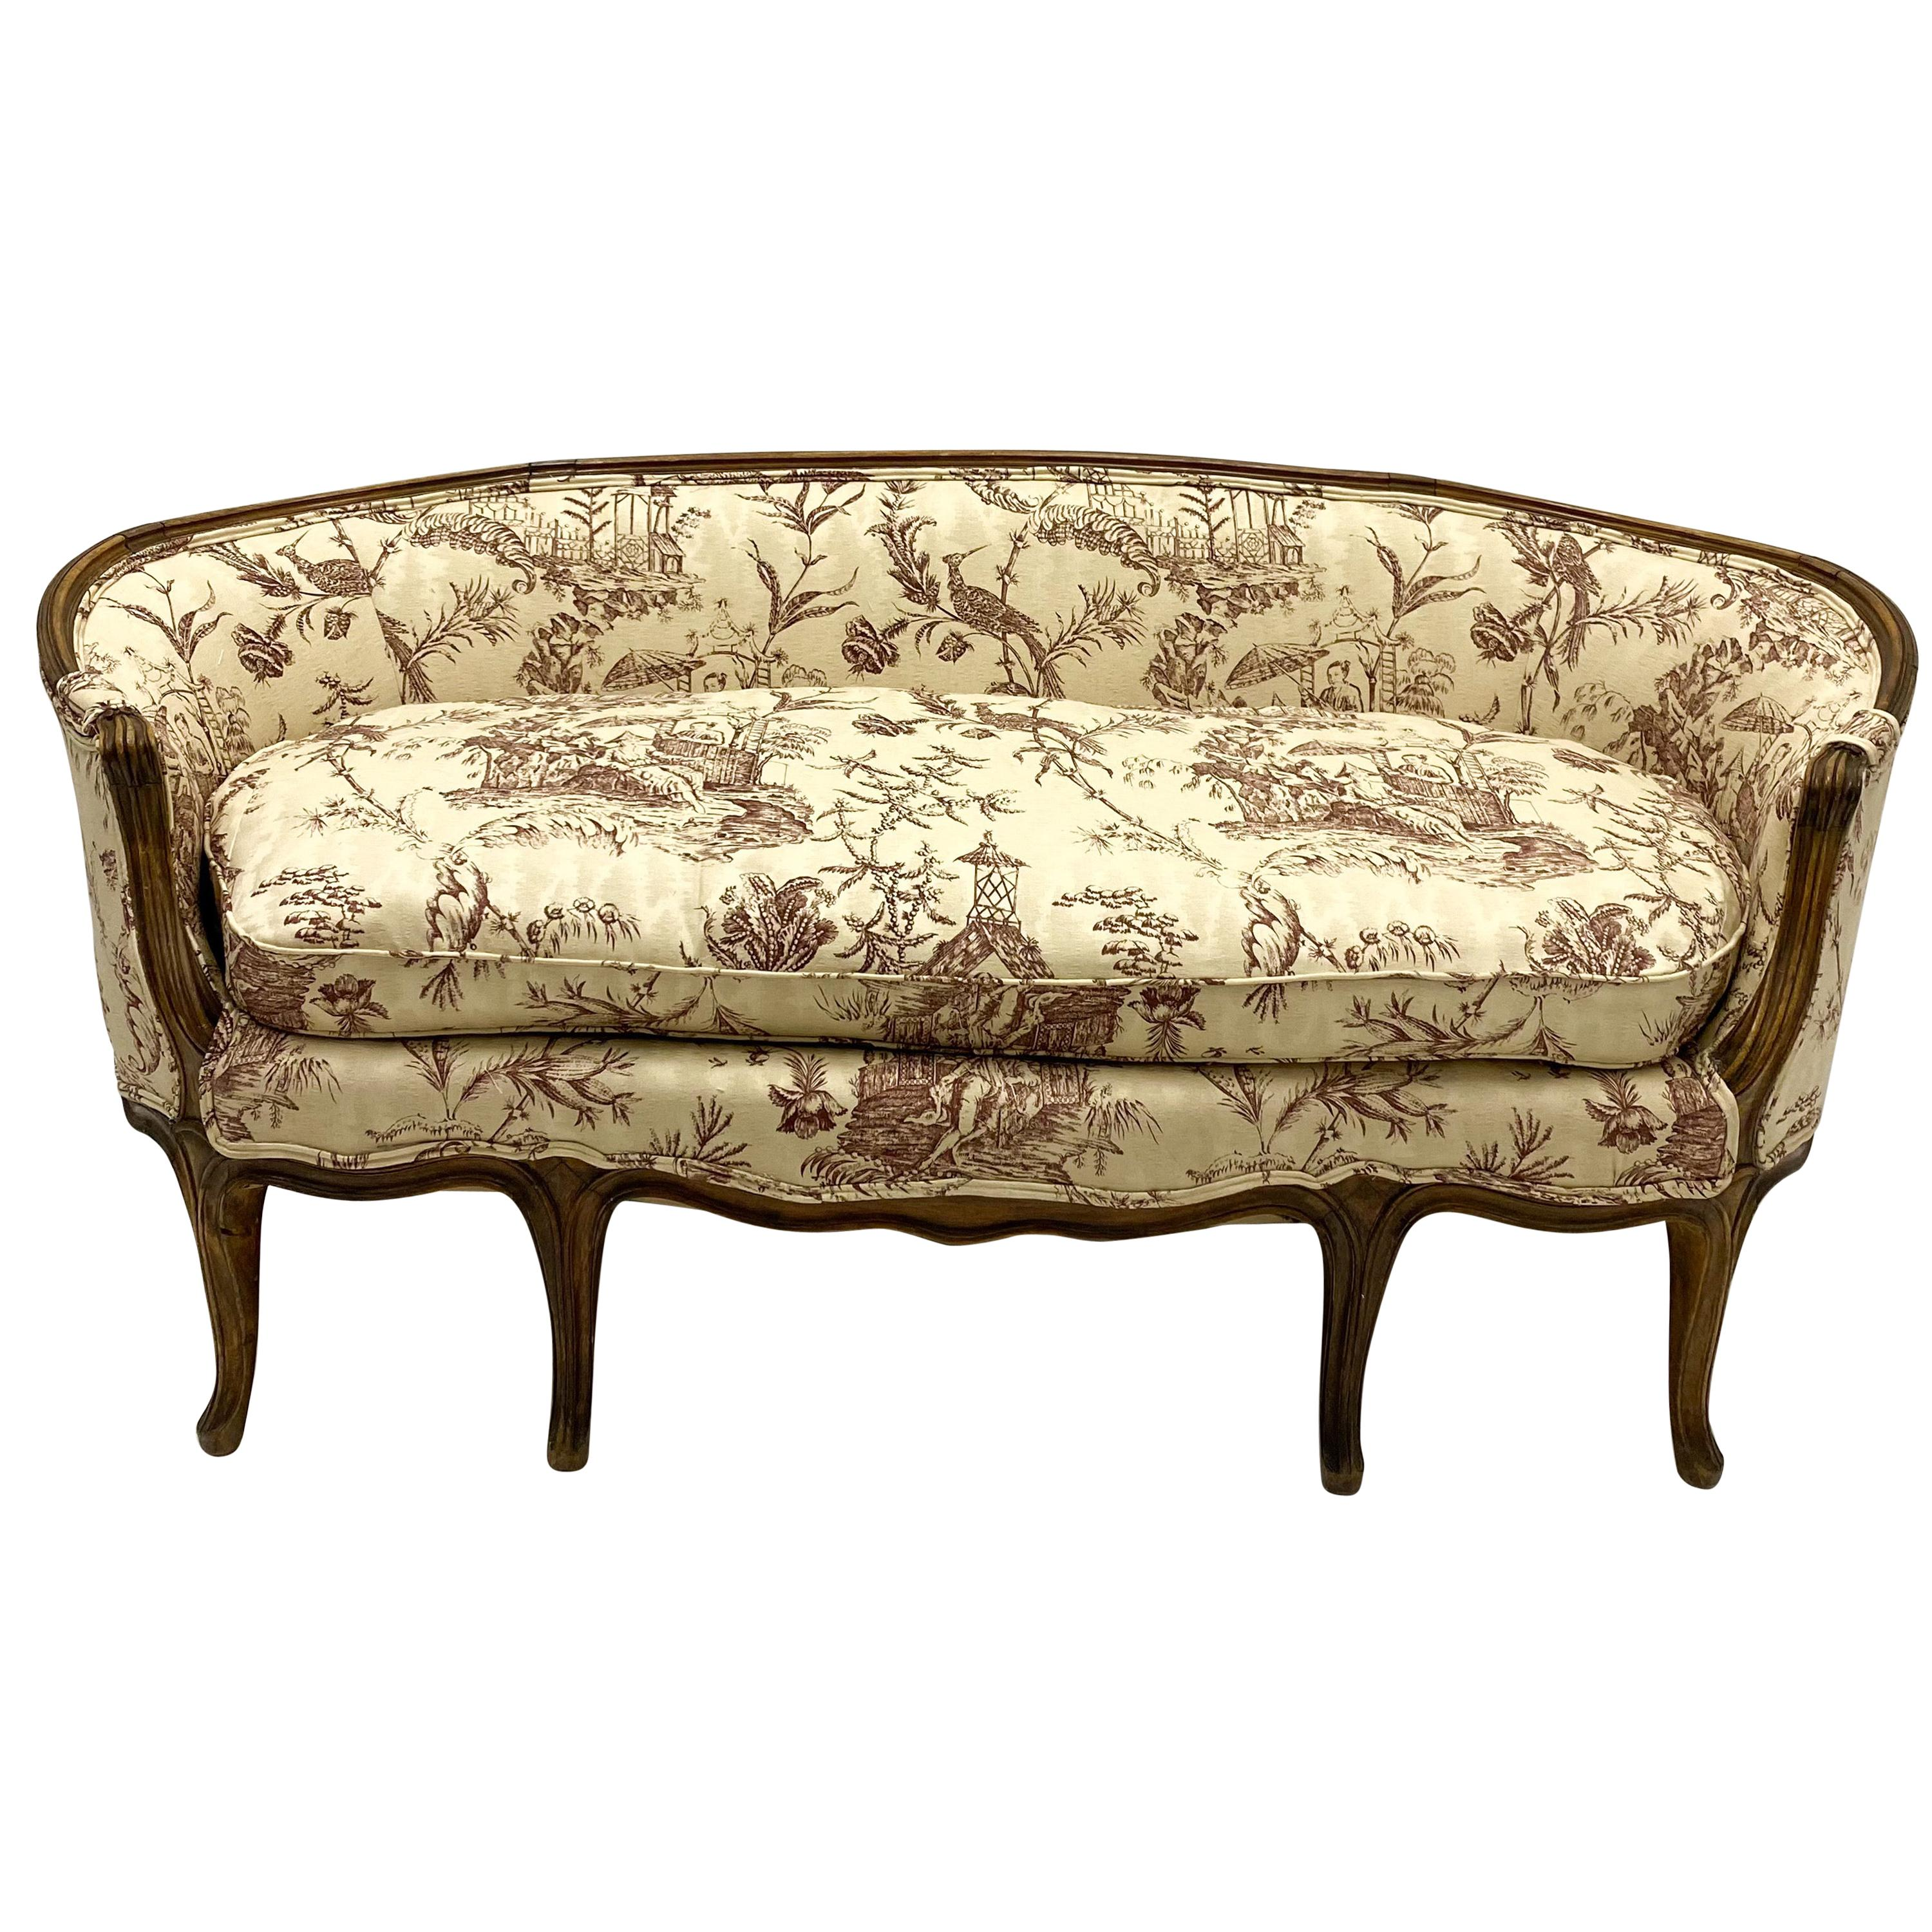 19th Century Louis XVI Style French Chinoiserie Carved Walnut Canape / Settee